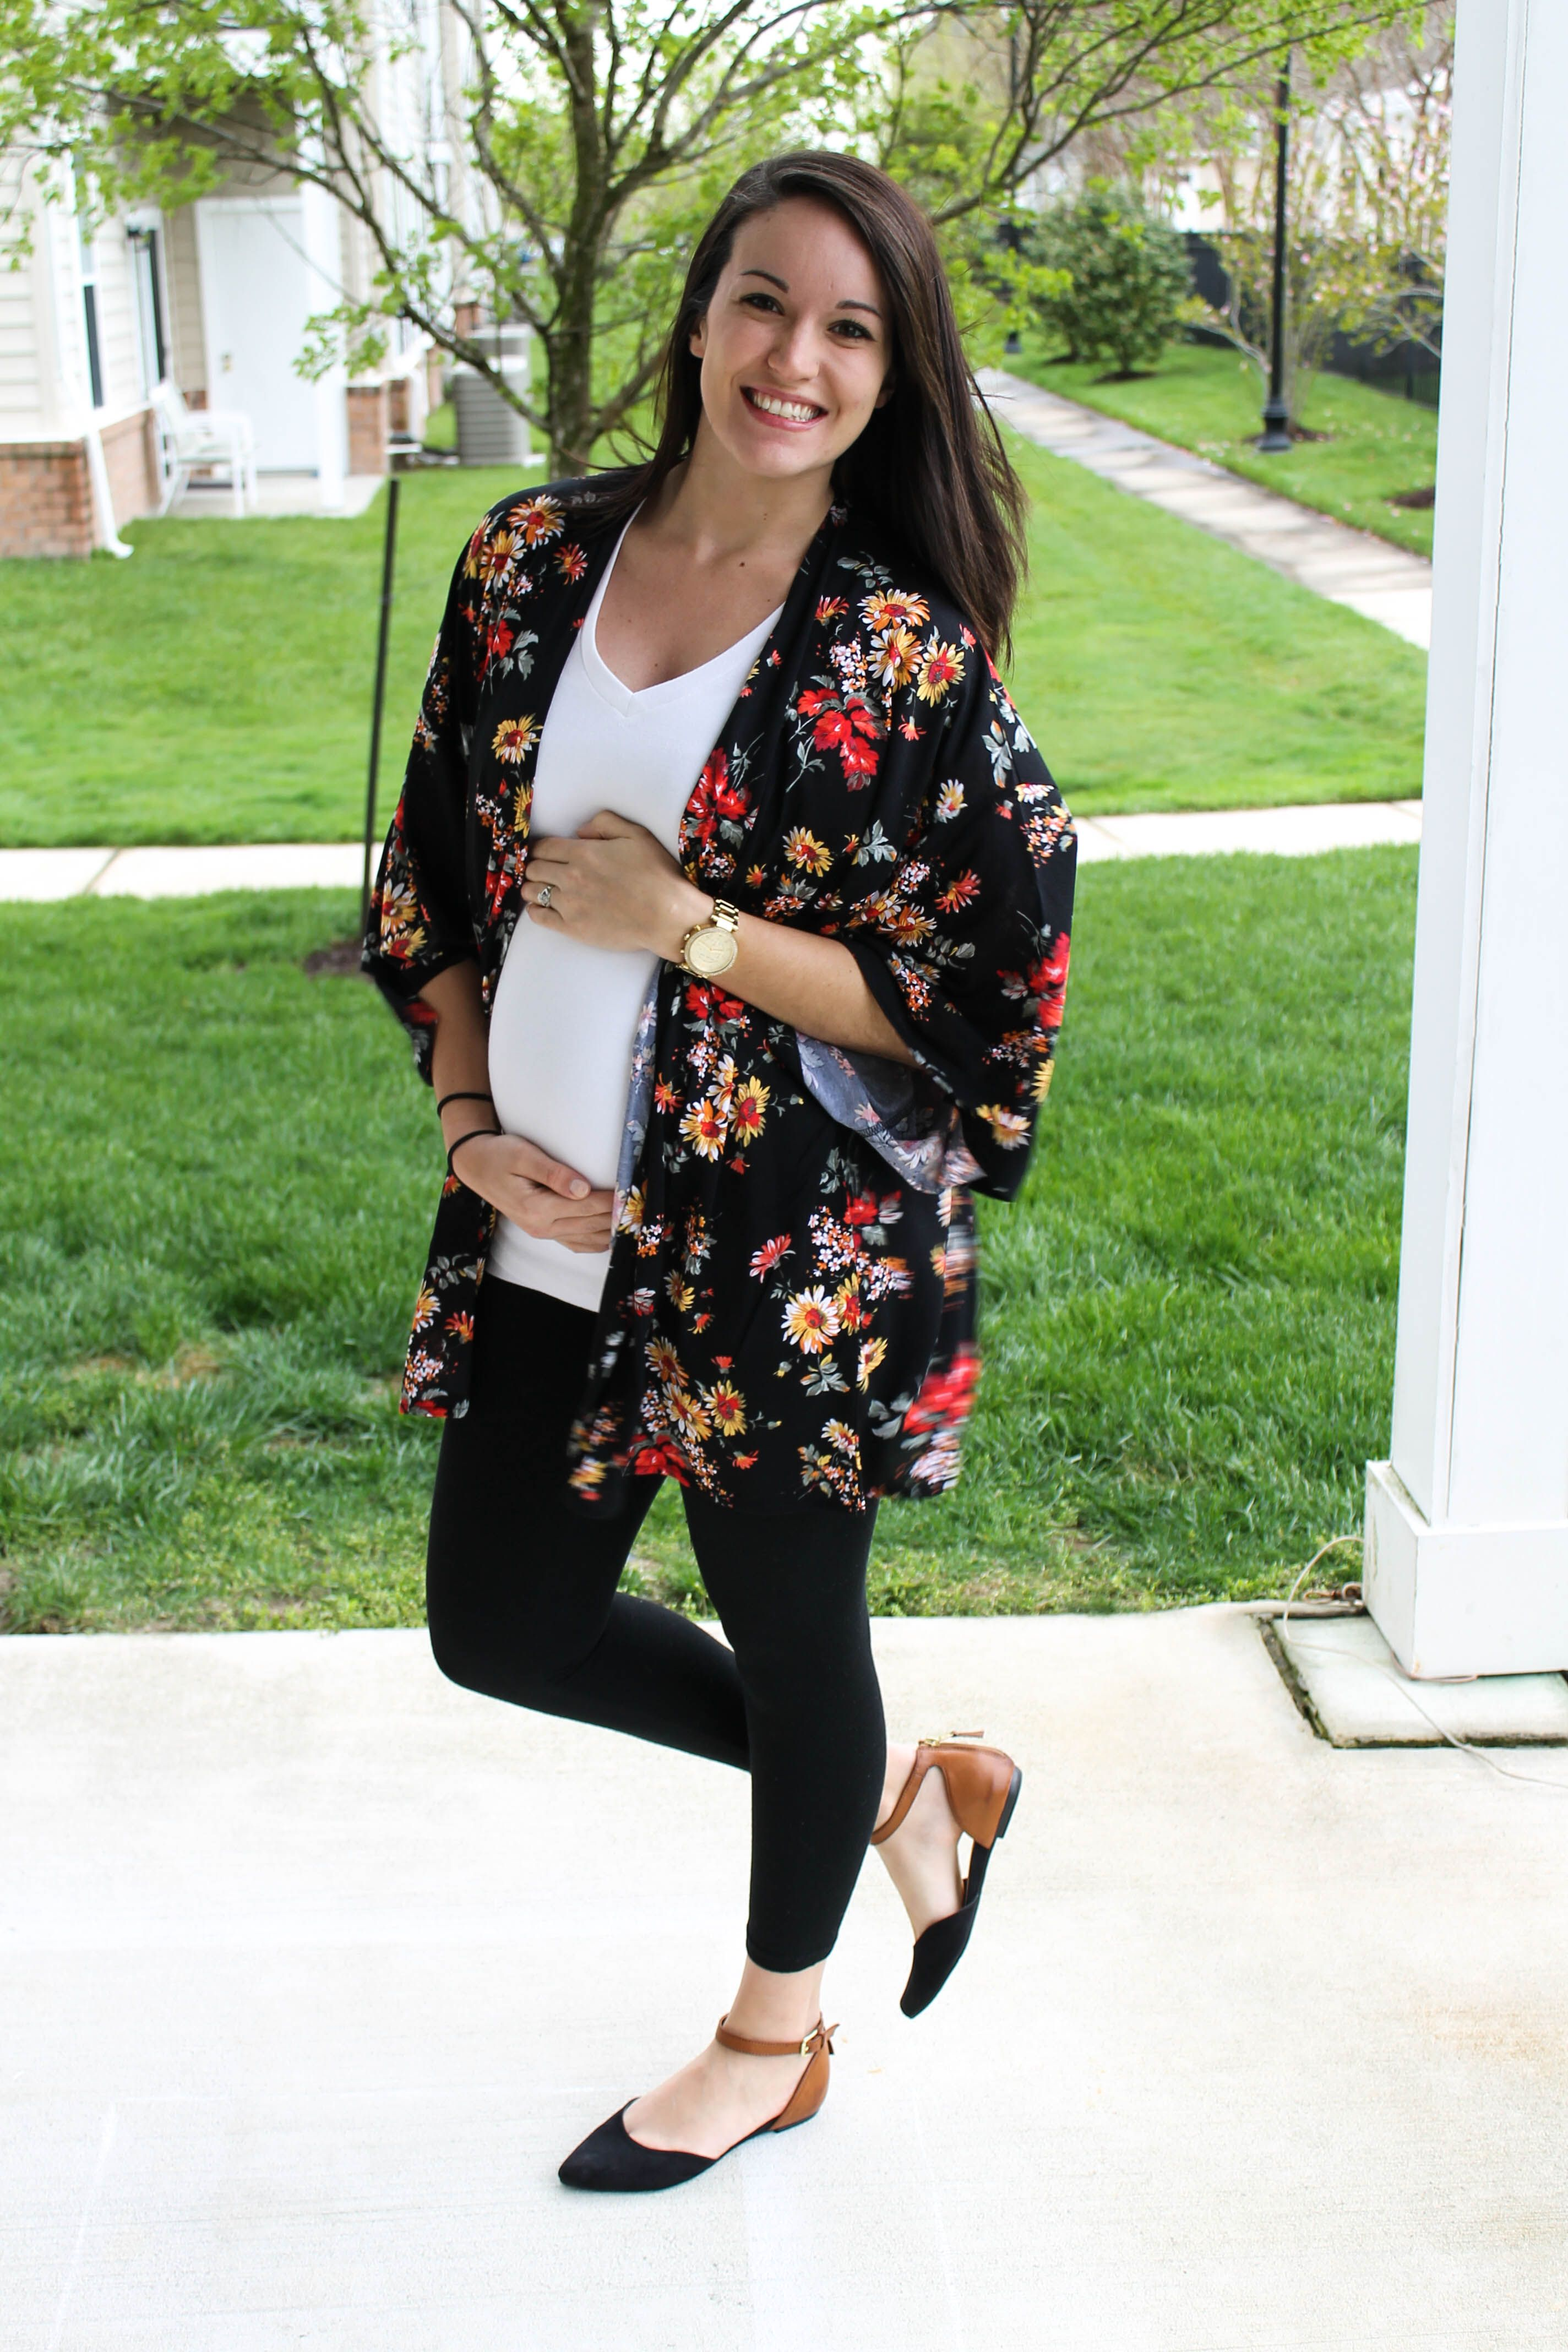 77a26f634c5a8 Cute Pregnancy Outfits, Pregnancy Fashion, Pregnancy Style, Pregnancy  Wardrobe,